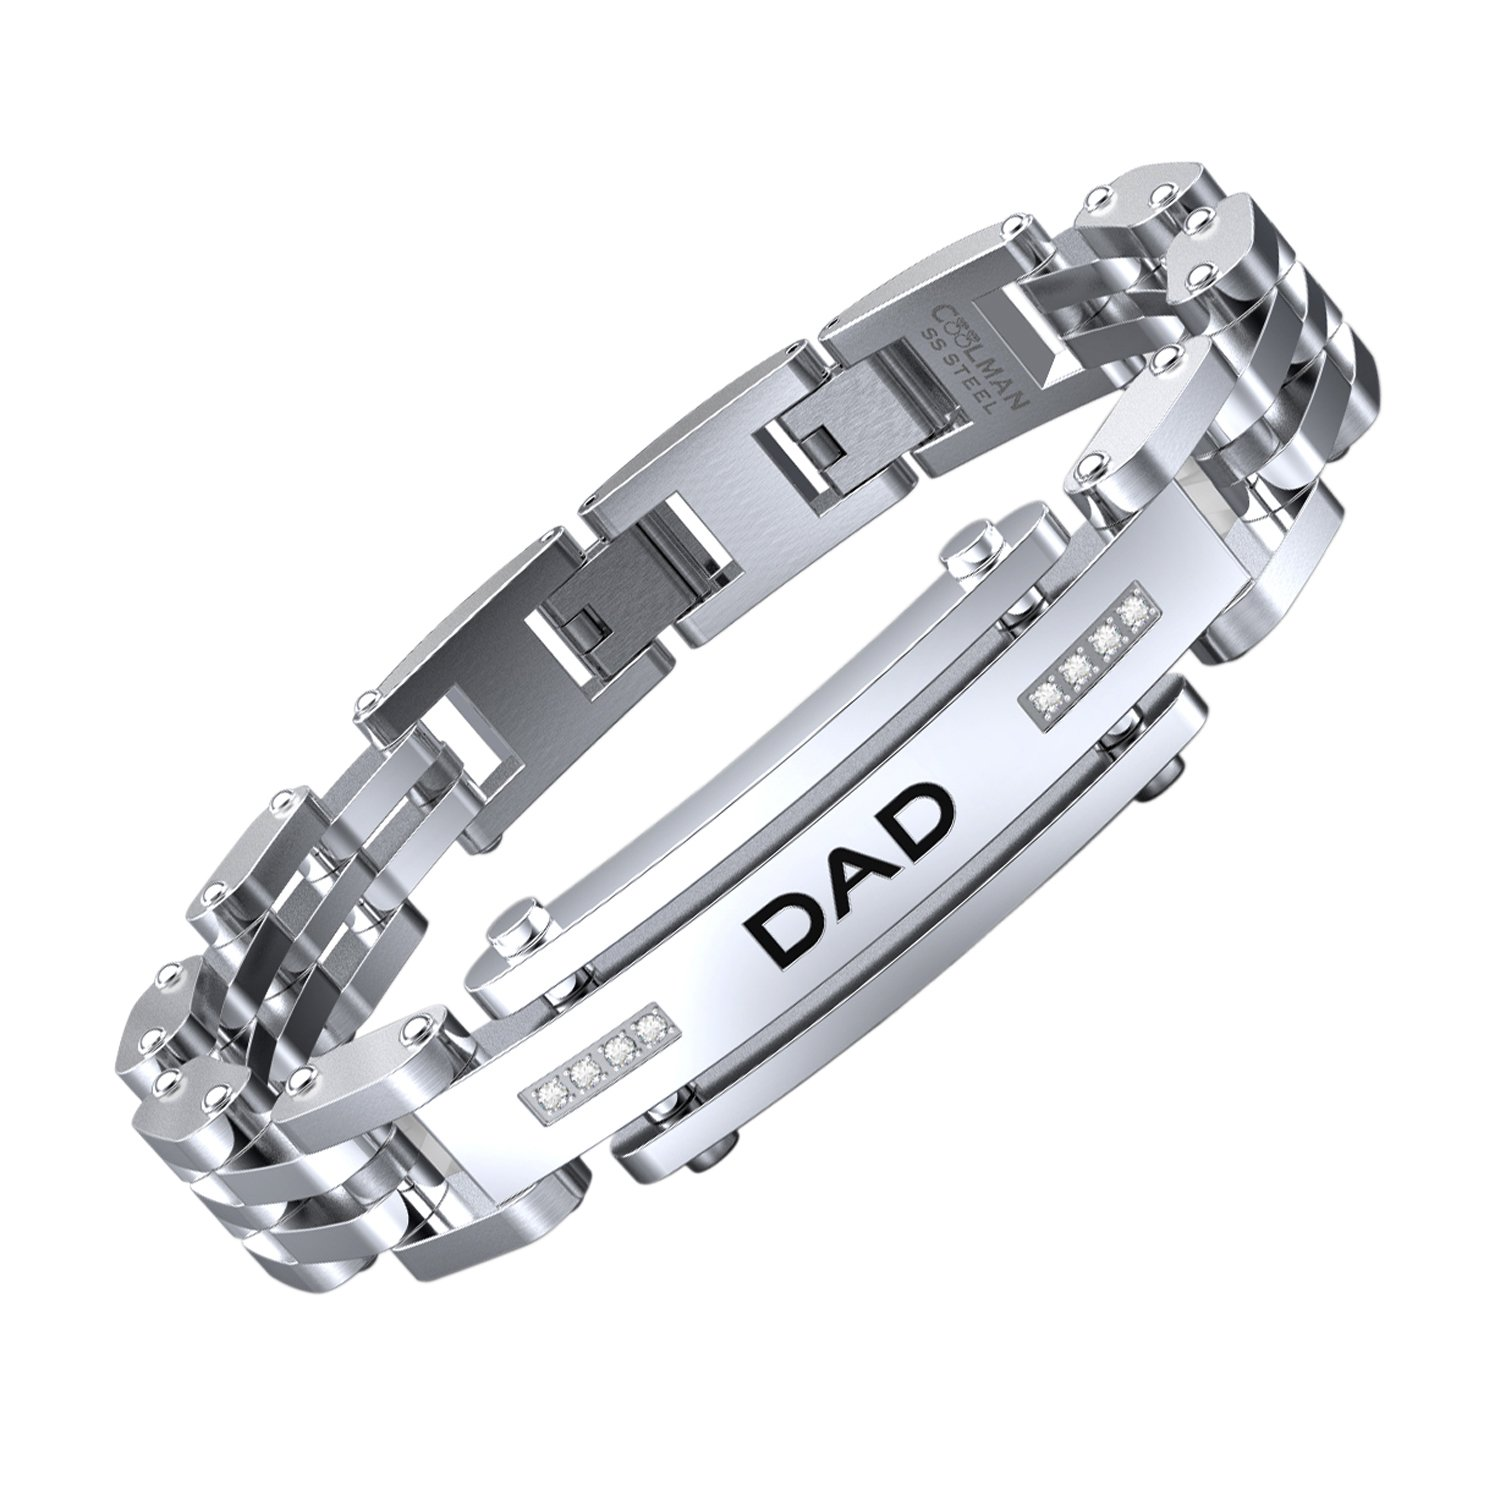 7686be90b6 Amazon.com: COOLMAN Men Bracelet Stainless Steel with Adjustable Clasp  Engraved Wristband for DAD Father: Jewelry